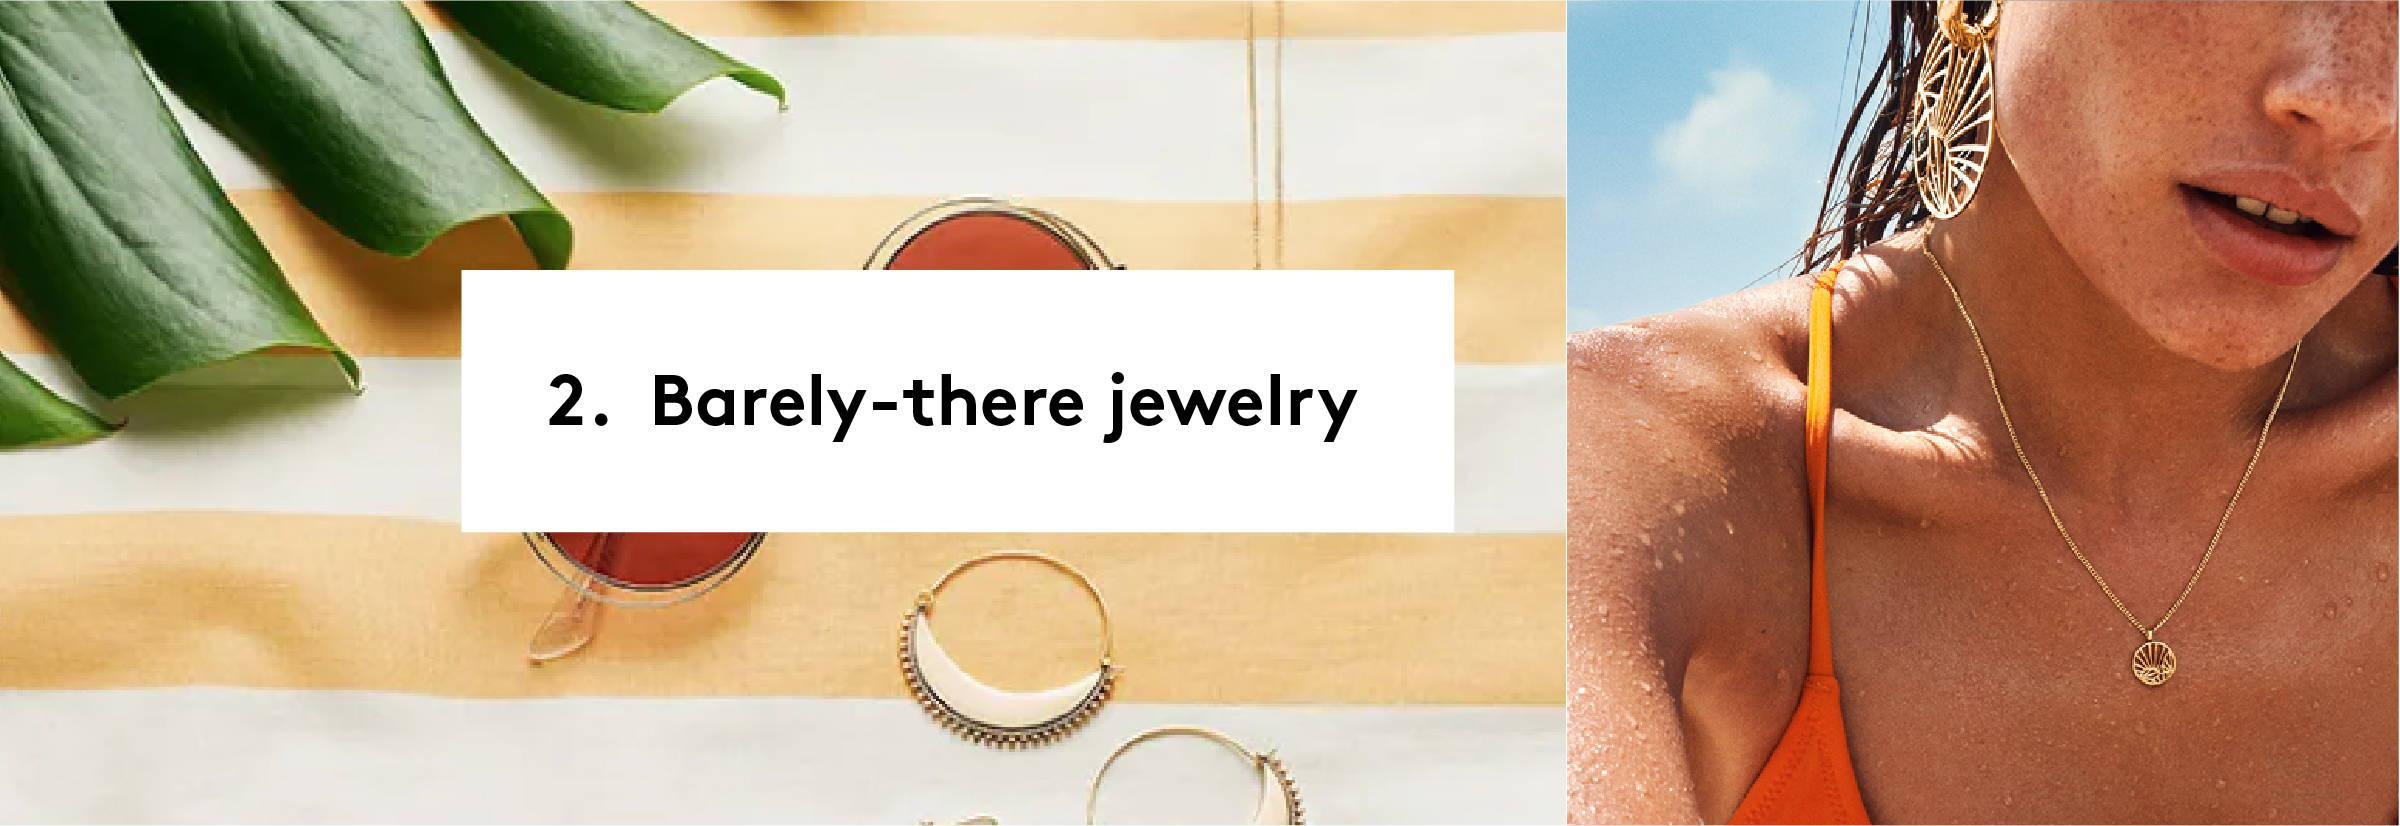 Get the BARELY-THERE JEWELRY from PILGRIM!